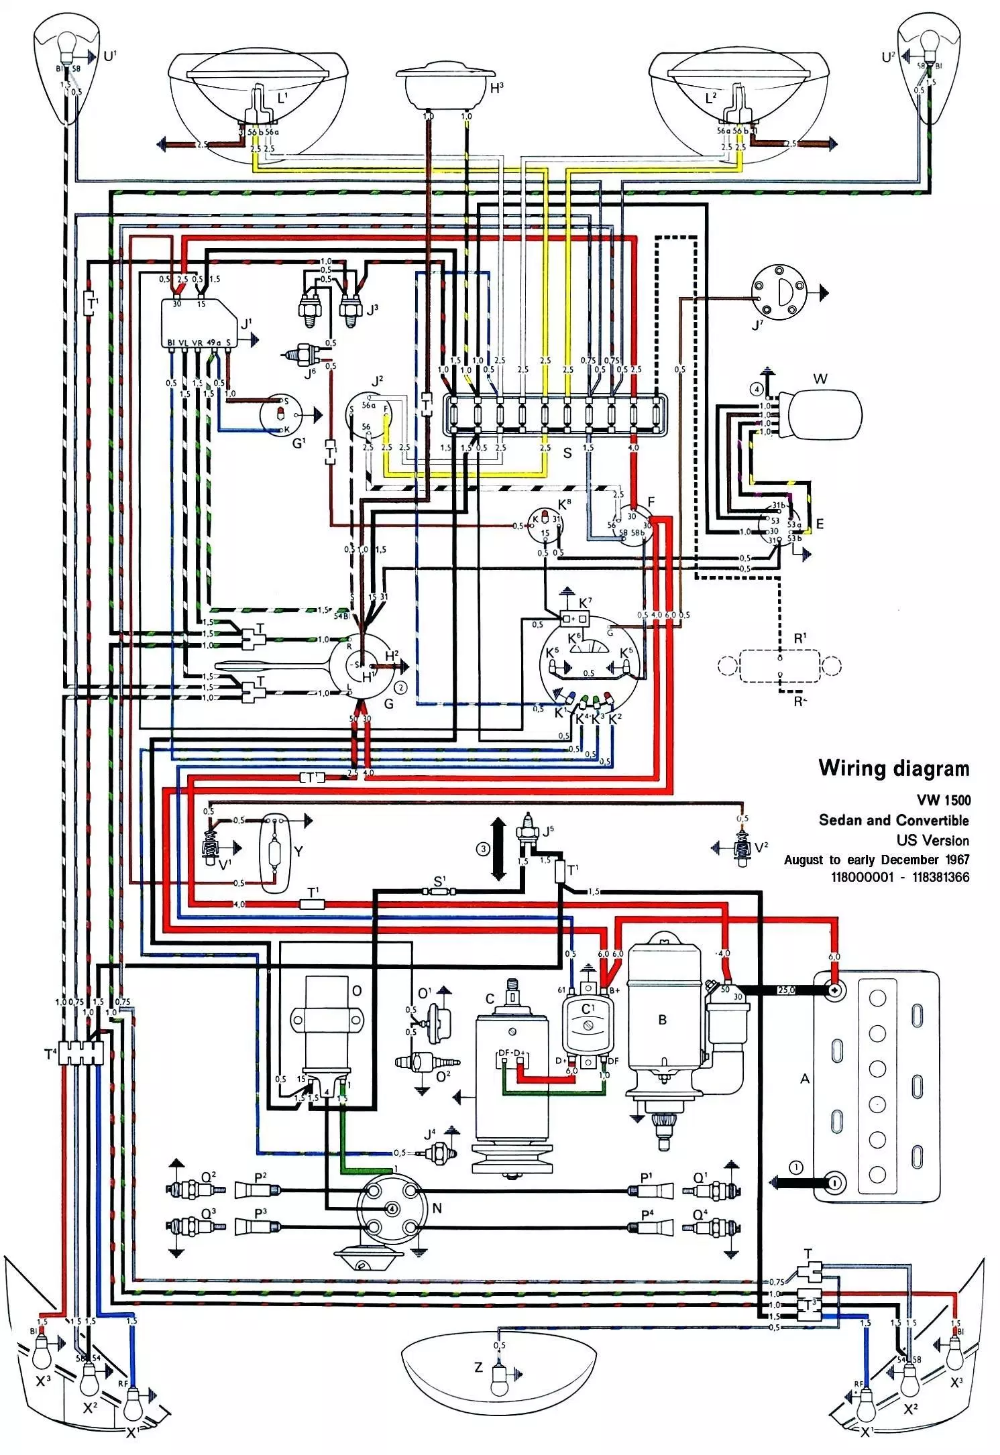 Vw Bus Ignition Wiring Diagram - wiring diagram switches-rule -  switches-rule.ristorantegorgodelpo.it | Bus Electrical Wiring Diagrams |  | Ristorante Gorgo del Po